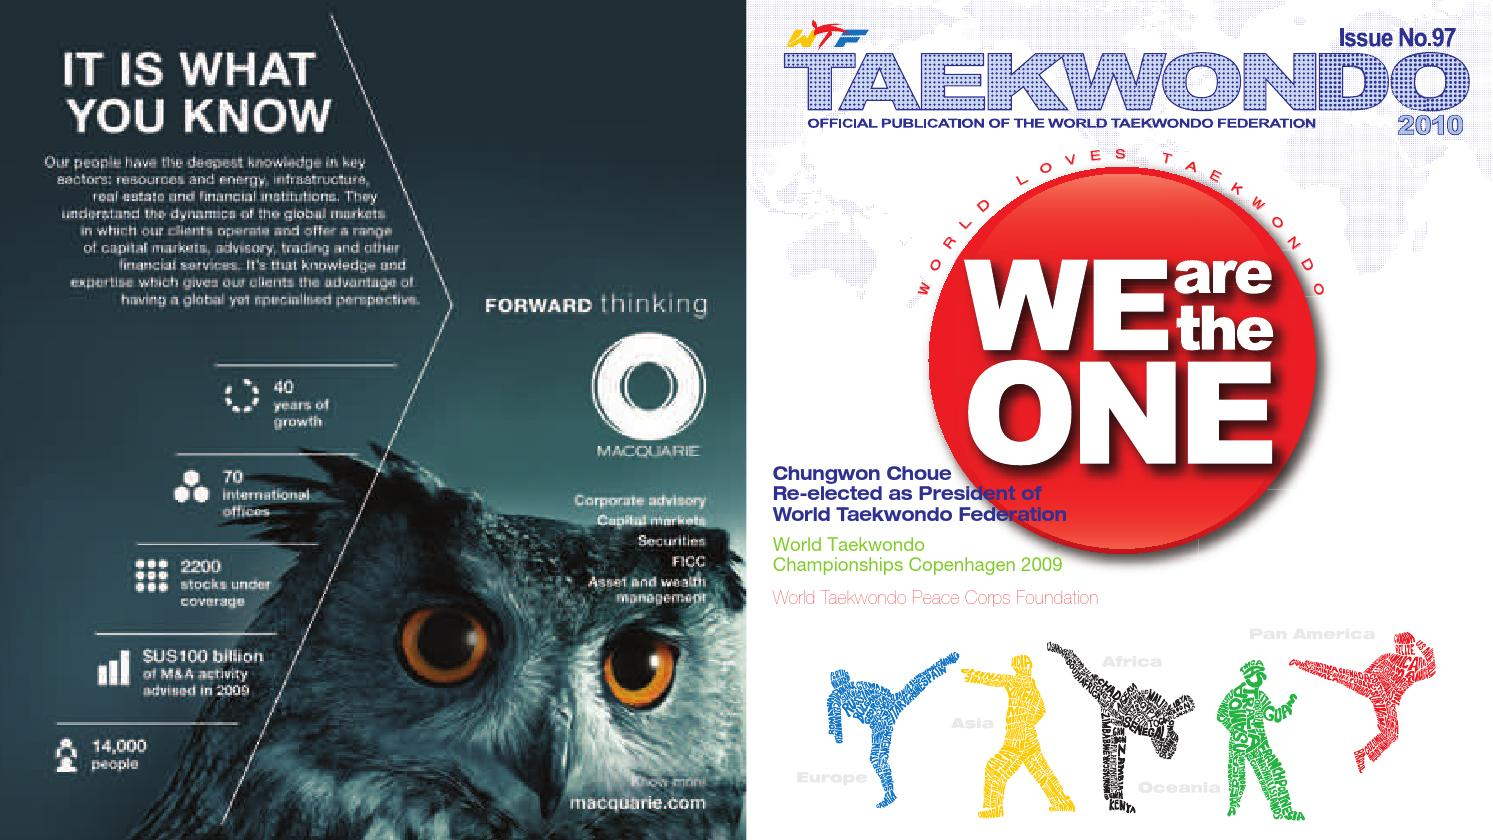 Taekwondo 2010 By Dunsar Media Pany Limited Issuu